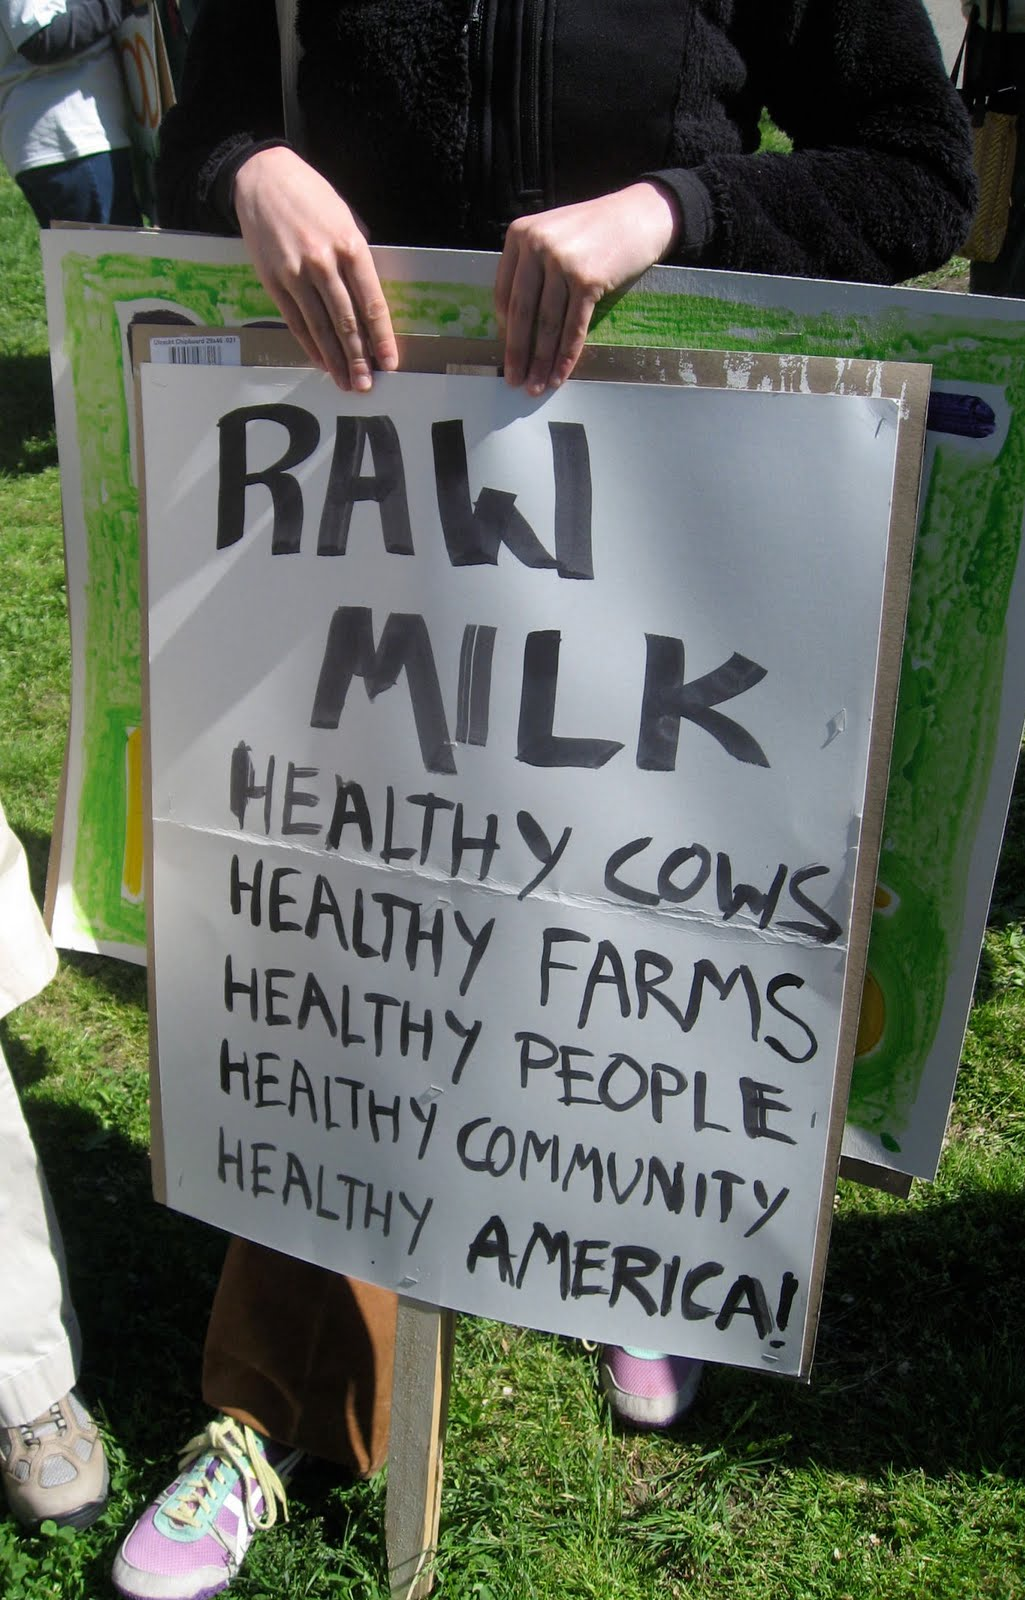 milk, ron paul milk, whole foods, soya milk, milk powder, powder milk, dairy milk, milk dairy, cow milk, milk recipes, raw milk, milk raw, dairy products, got milk, whole milk, milk whole, skim milk, 1 milk, milk production, organic milk, milk organic, rice milk, milk nutrition, dairy farms, pasteurized, dairy farmers, milk products, buy milk, dairy farming, milk facts, facts milk, milk nutrition facts, milk bottles, pasteurizing milk, why organic, milk delivery, milk prices, raw butter, lactose free milk, pasteurisation, milk intolerance, uht milk, low fat milk, pasteurized milk, milk pasteurized, healthy milk, milk brands, raw cheese, milk processing, sheep milk, raw cream, ron paul